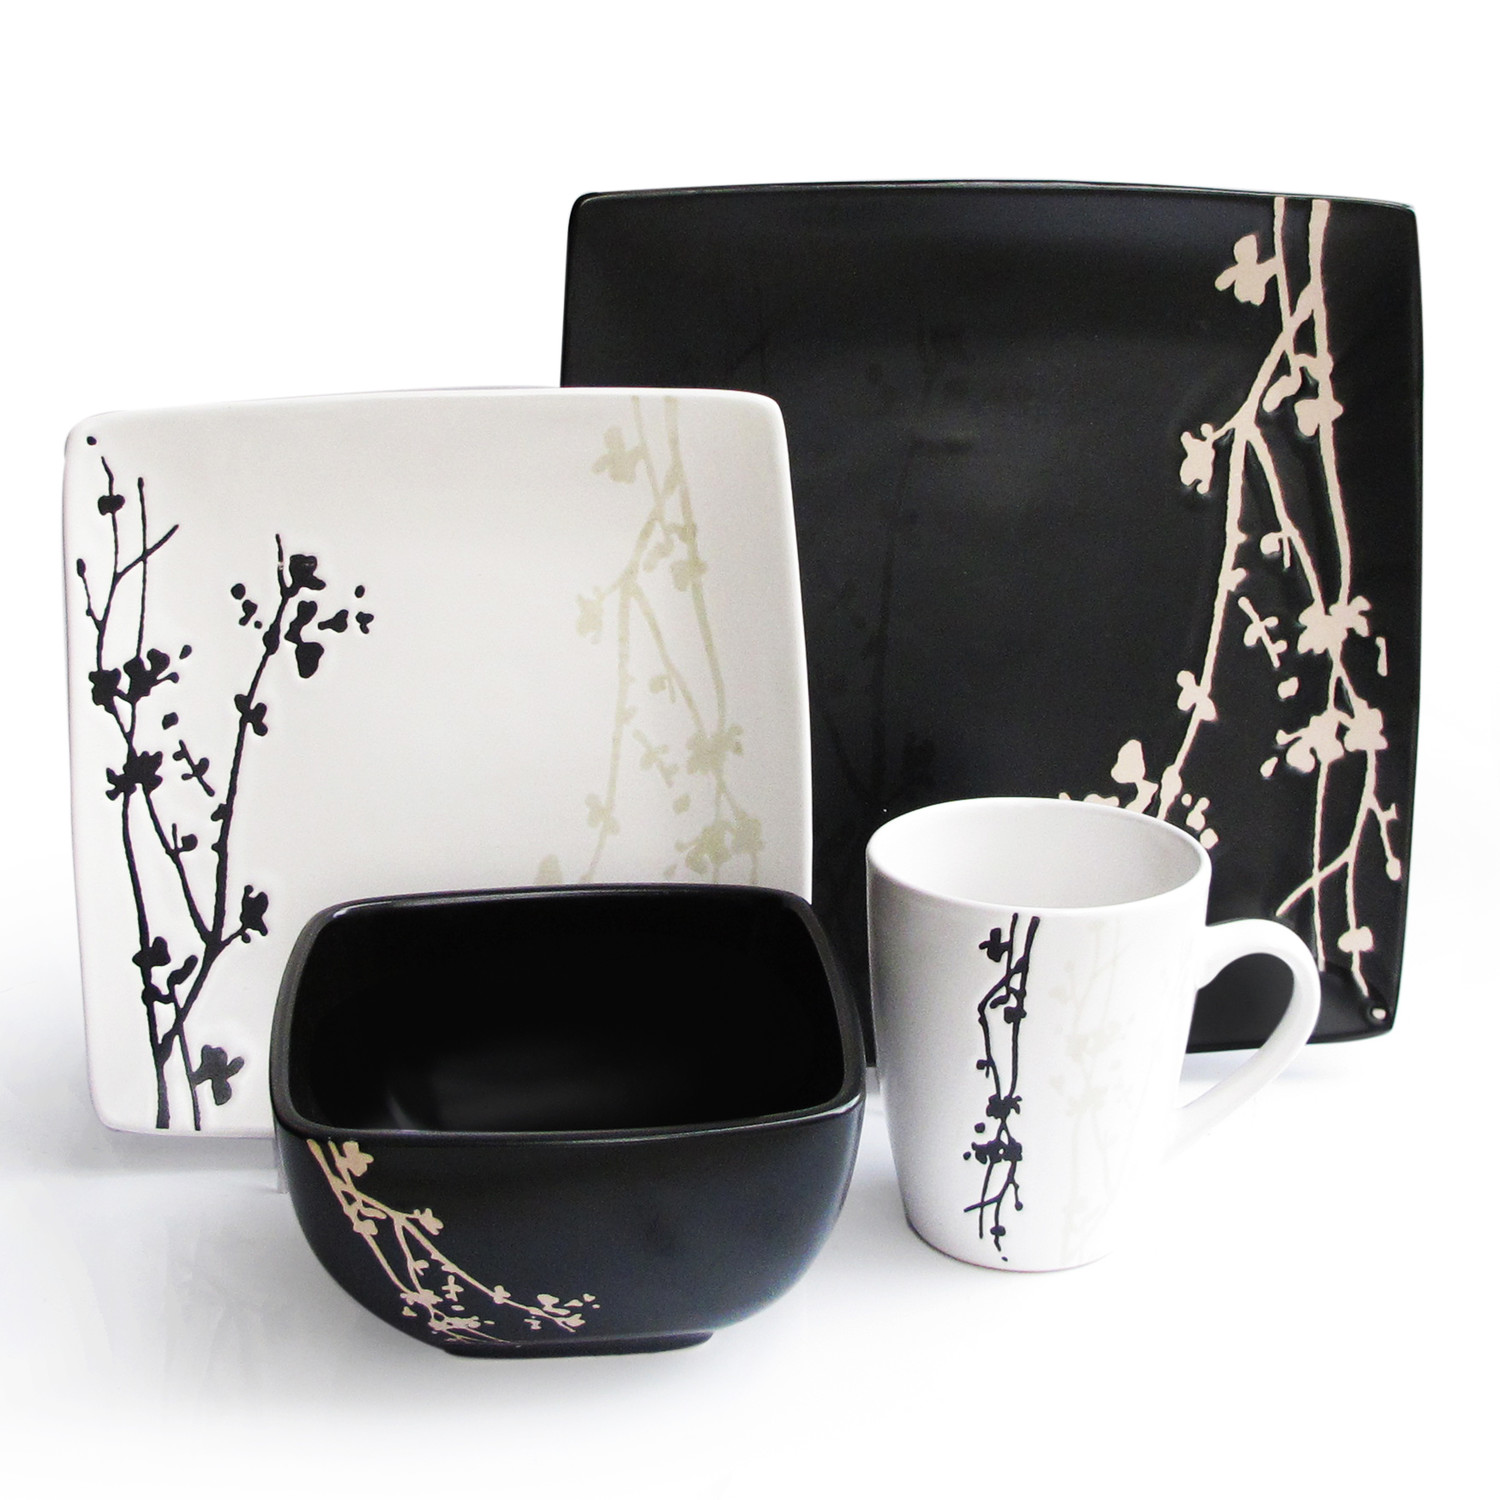 beautiful black and white dinnerware idea with japanese style of floral pattern  sc 1 st  HomesFeed & How to Color the Dining Table with Black and White Urban Ware ...